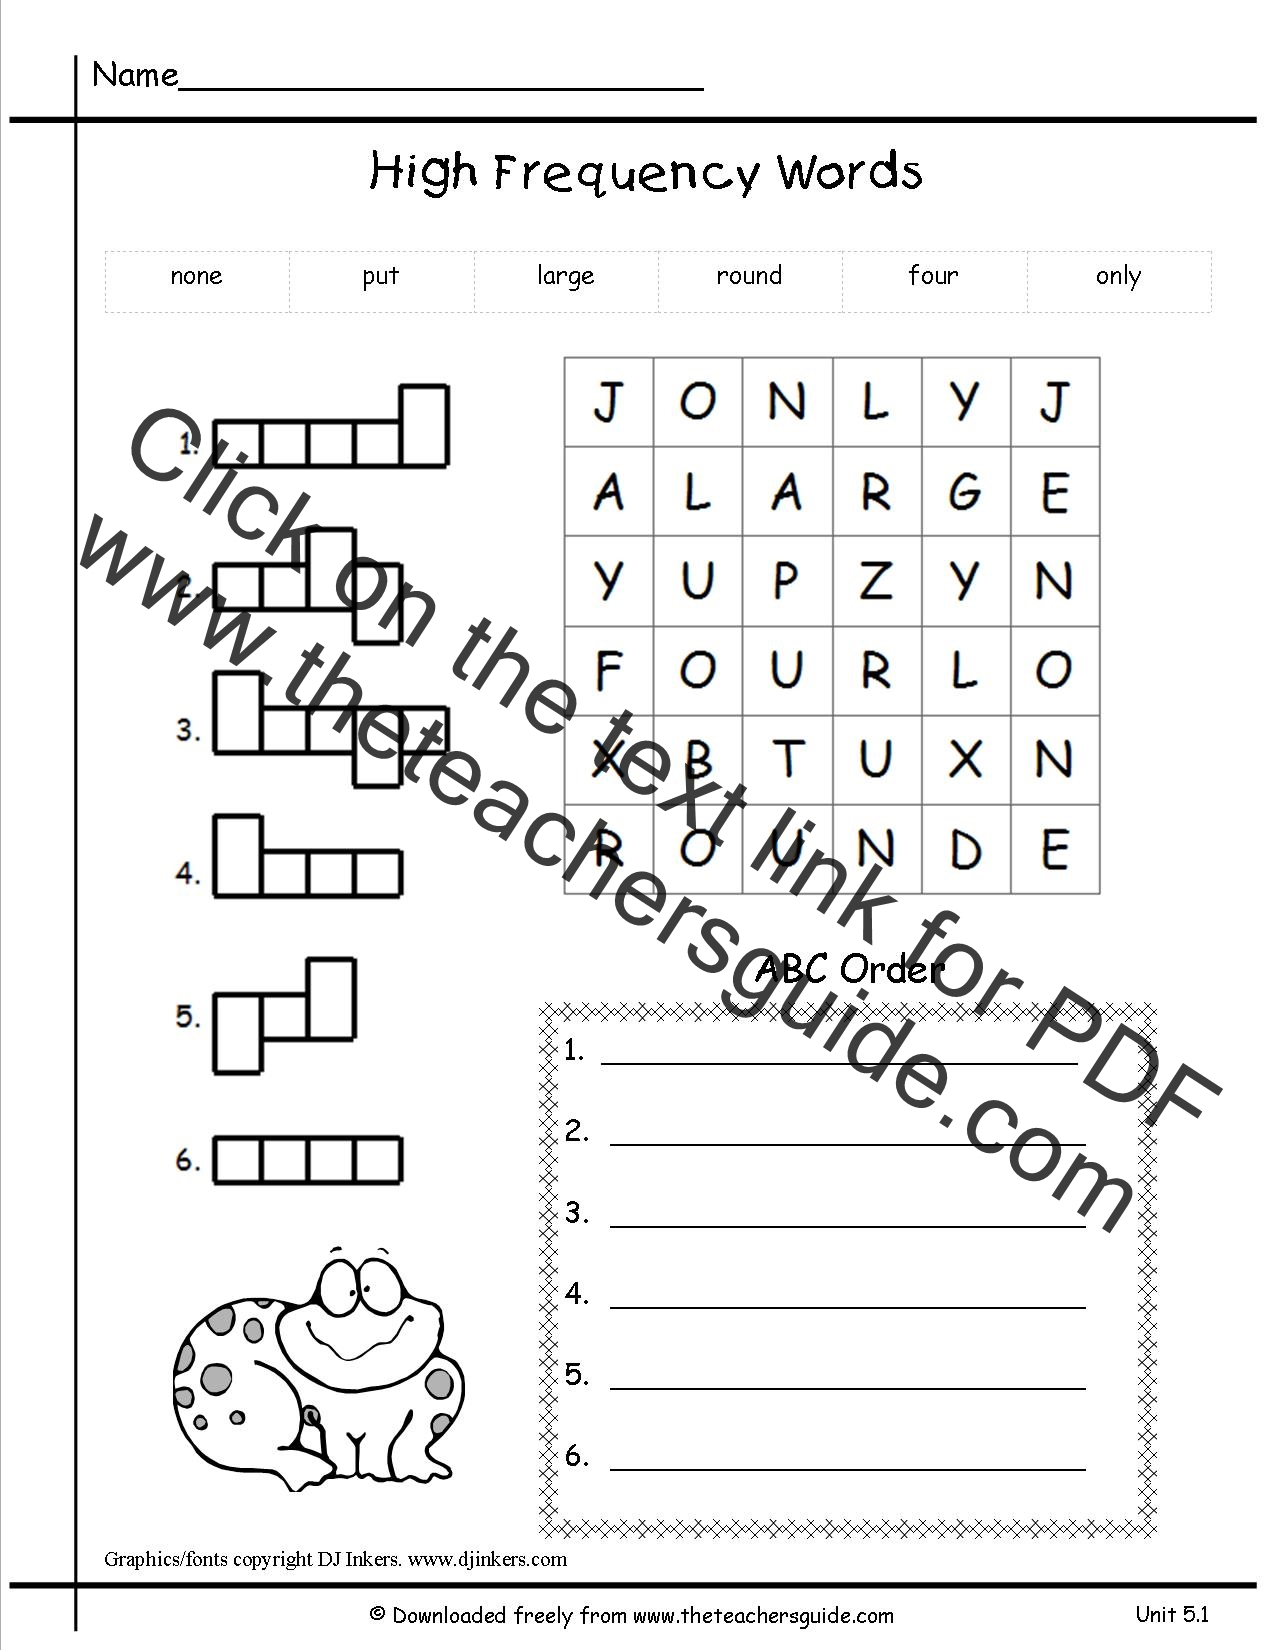 Printables Phonics Worksheets 1st Grade wonders first grade unit four week five printouts one printout high frequency words worksheet